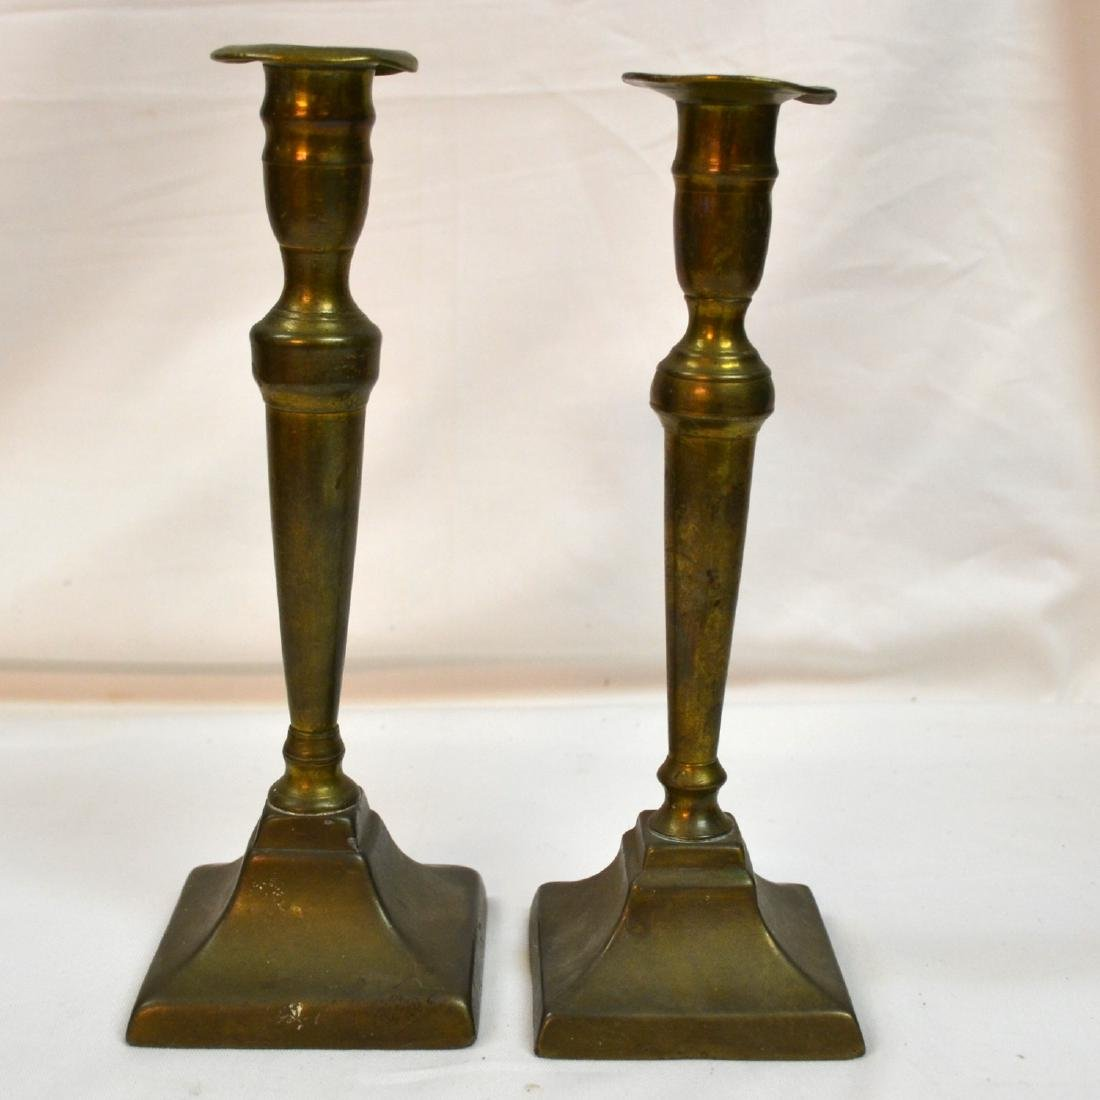 Vintage Pair of Brass Candle Holders/Square Candle